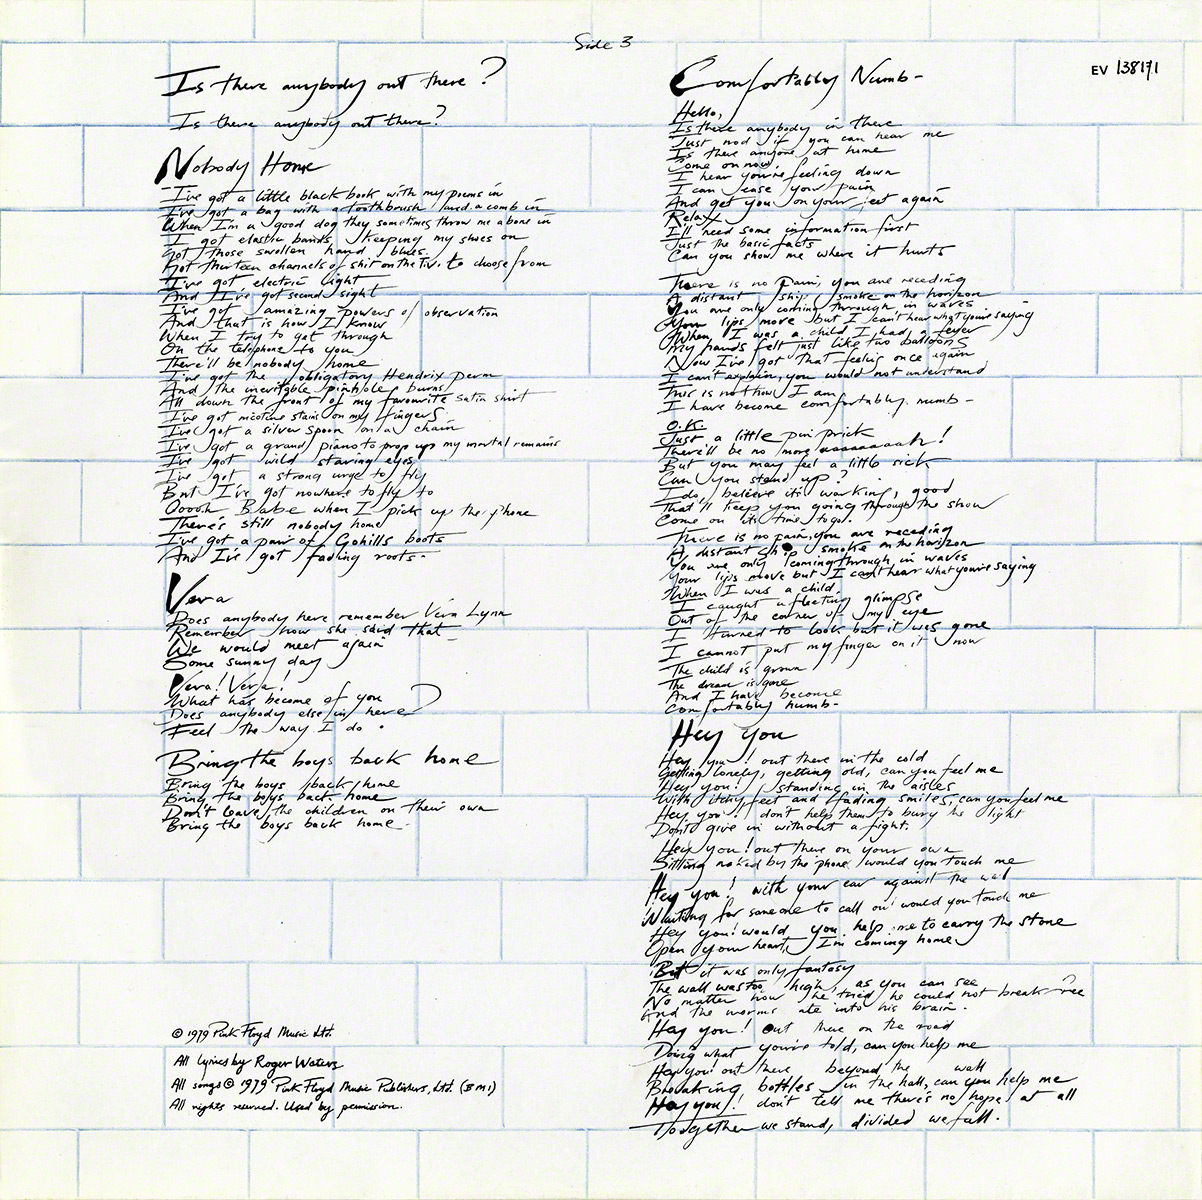 pink floyd archives